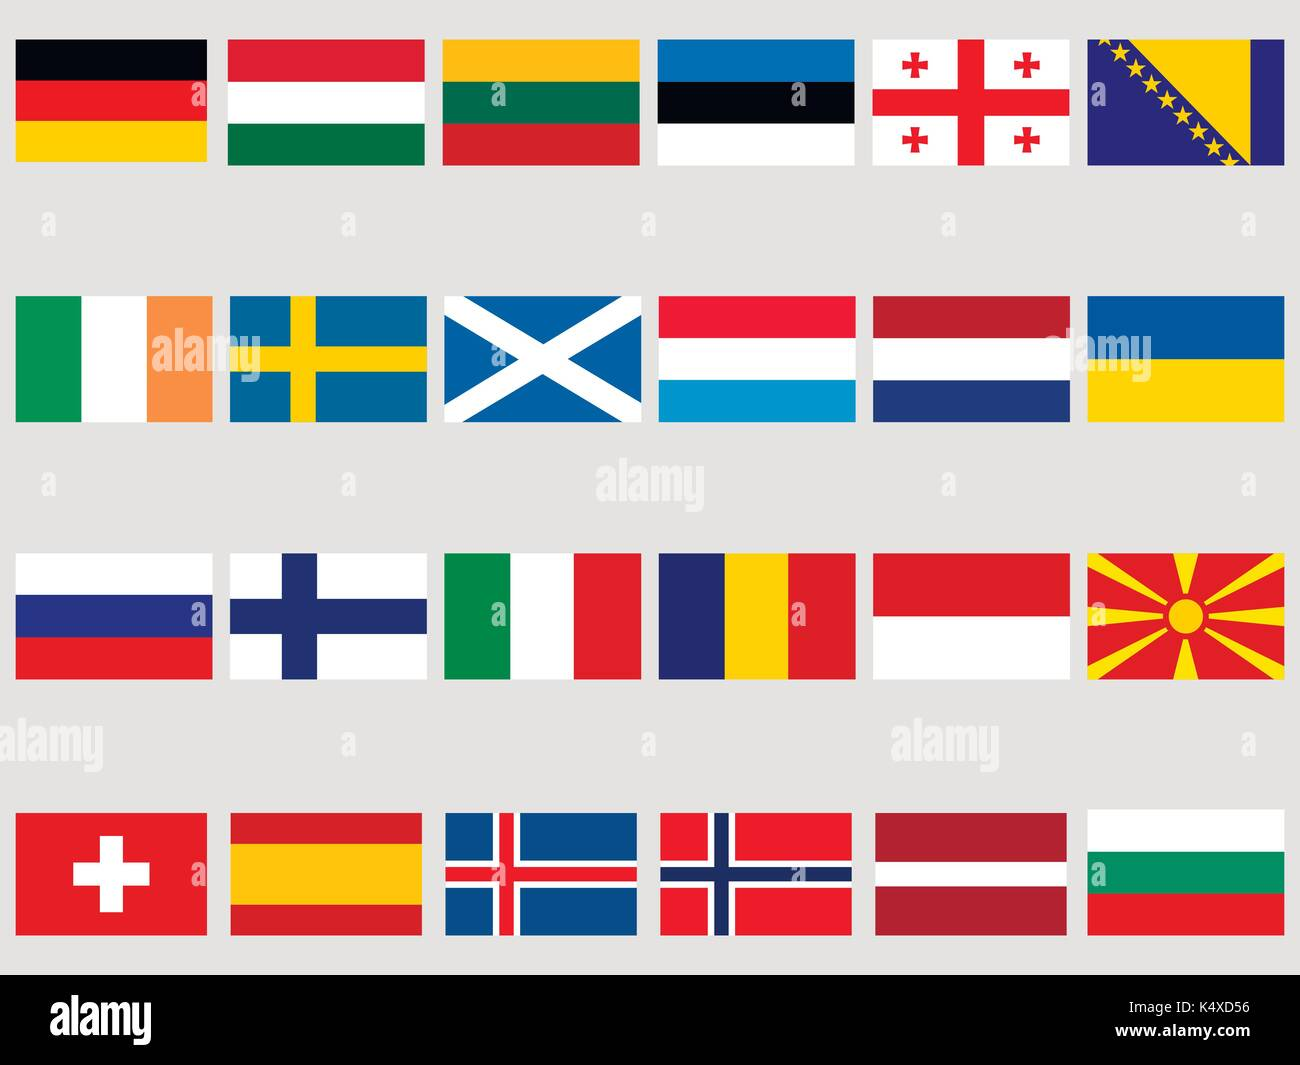 Collection of flags of European countries on a white background. Flag icon set. Vector illustration - Stock Vector